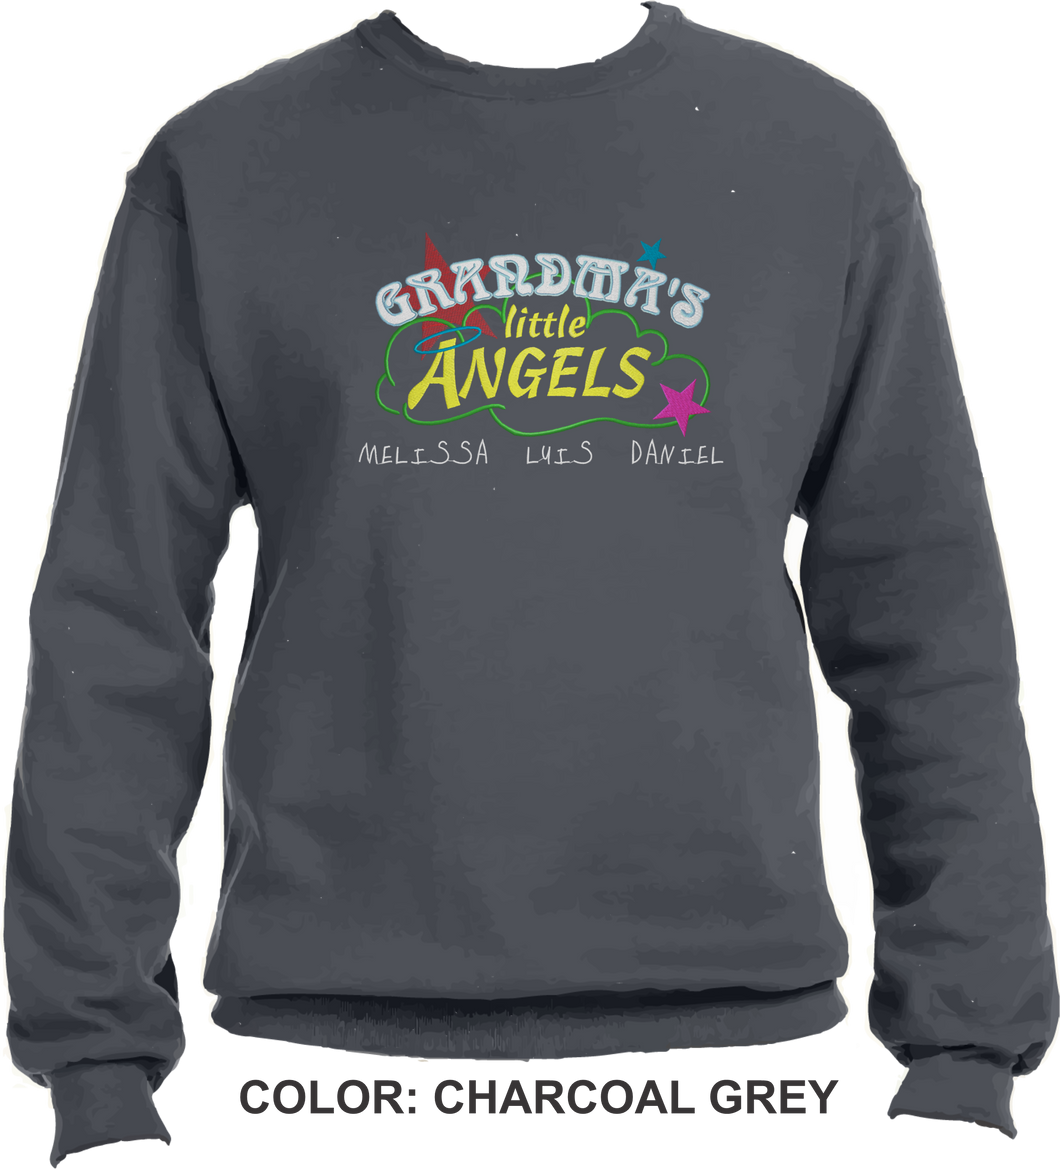 562 Grandma Angles Crewneck